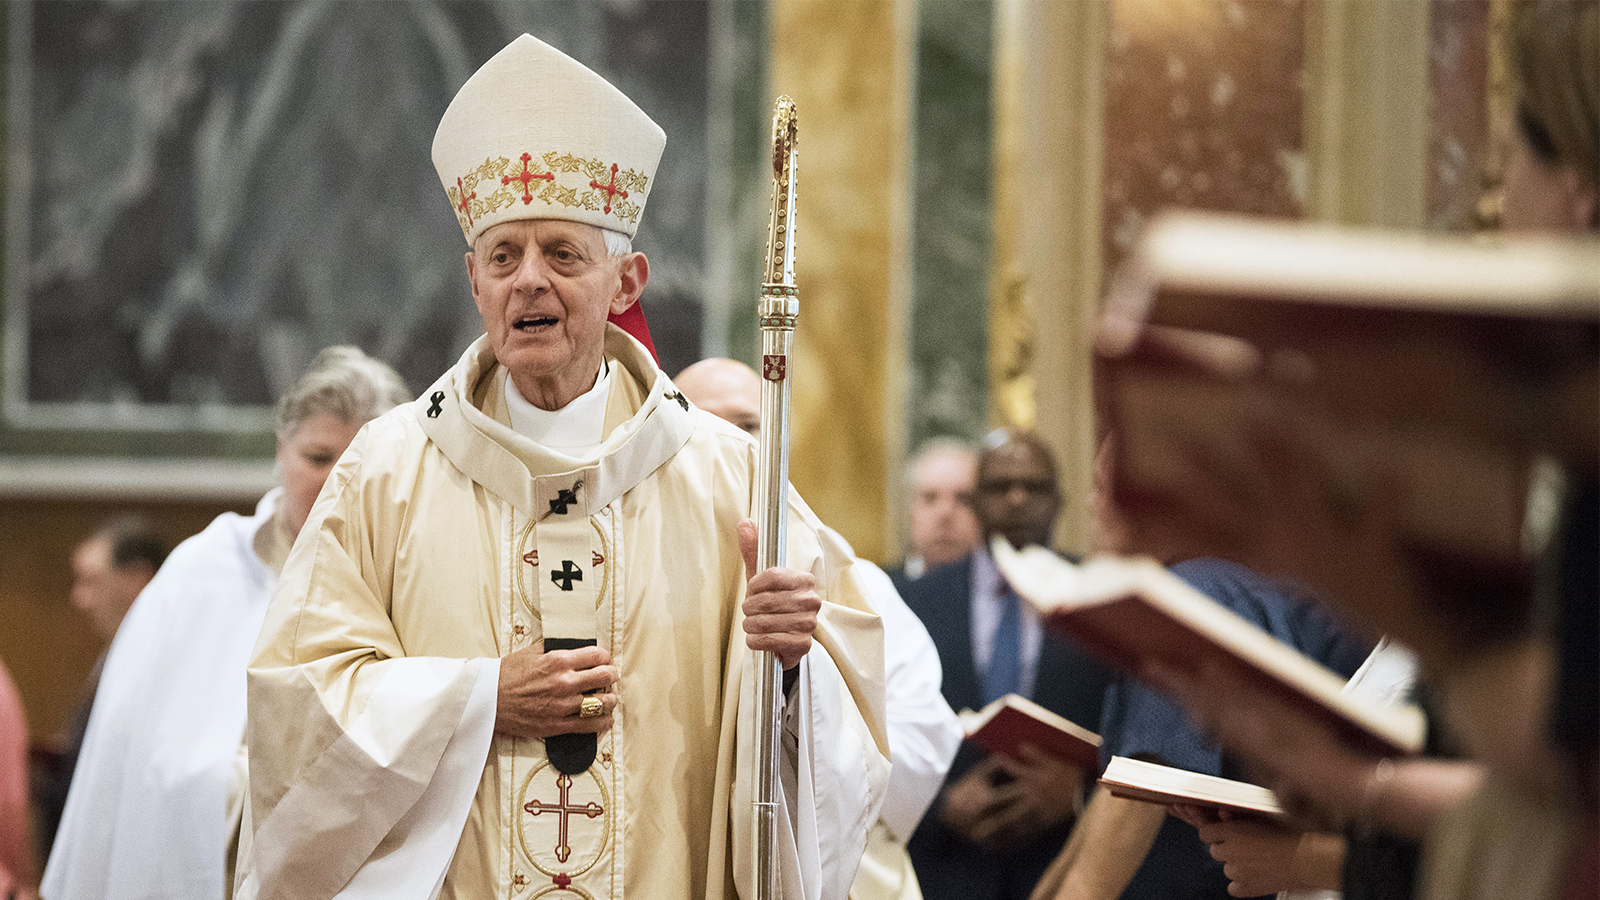 Pressing pope to accept his resignation, Cardinal Wuerl does the right thing - Religion News Service